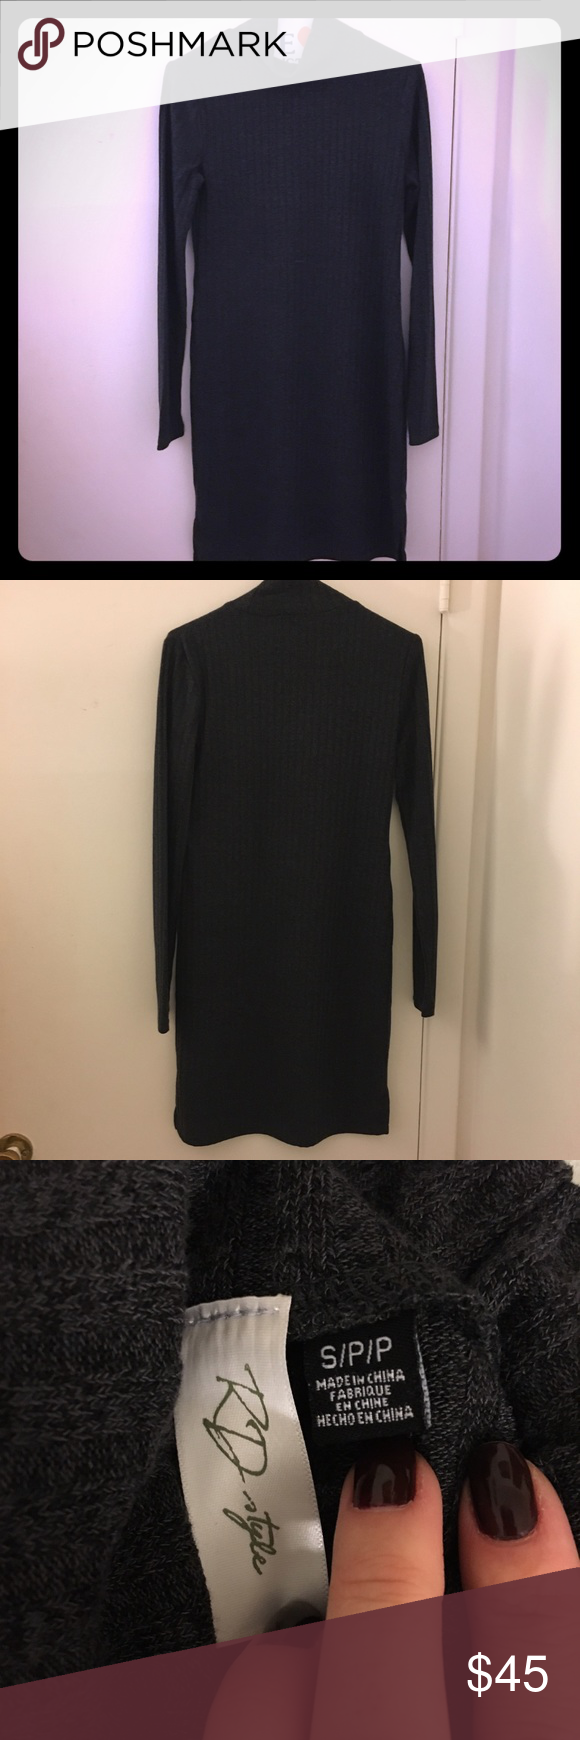 Nwot rd style turtleneck dress never worn dark grey turtleneck